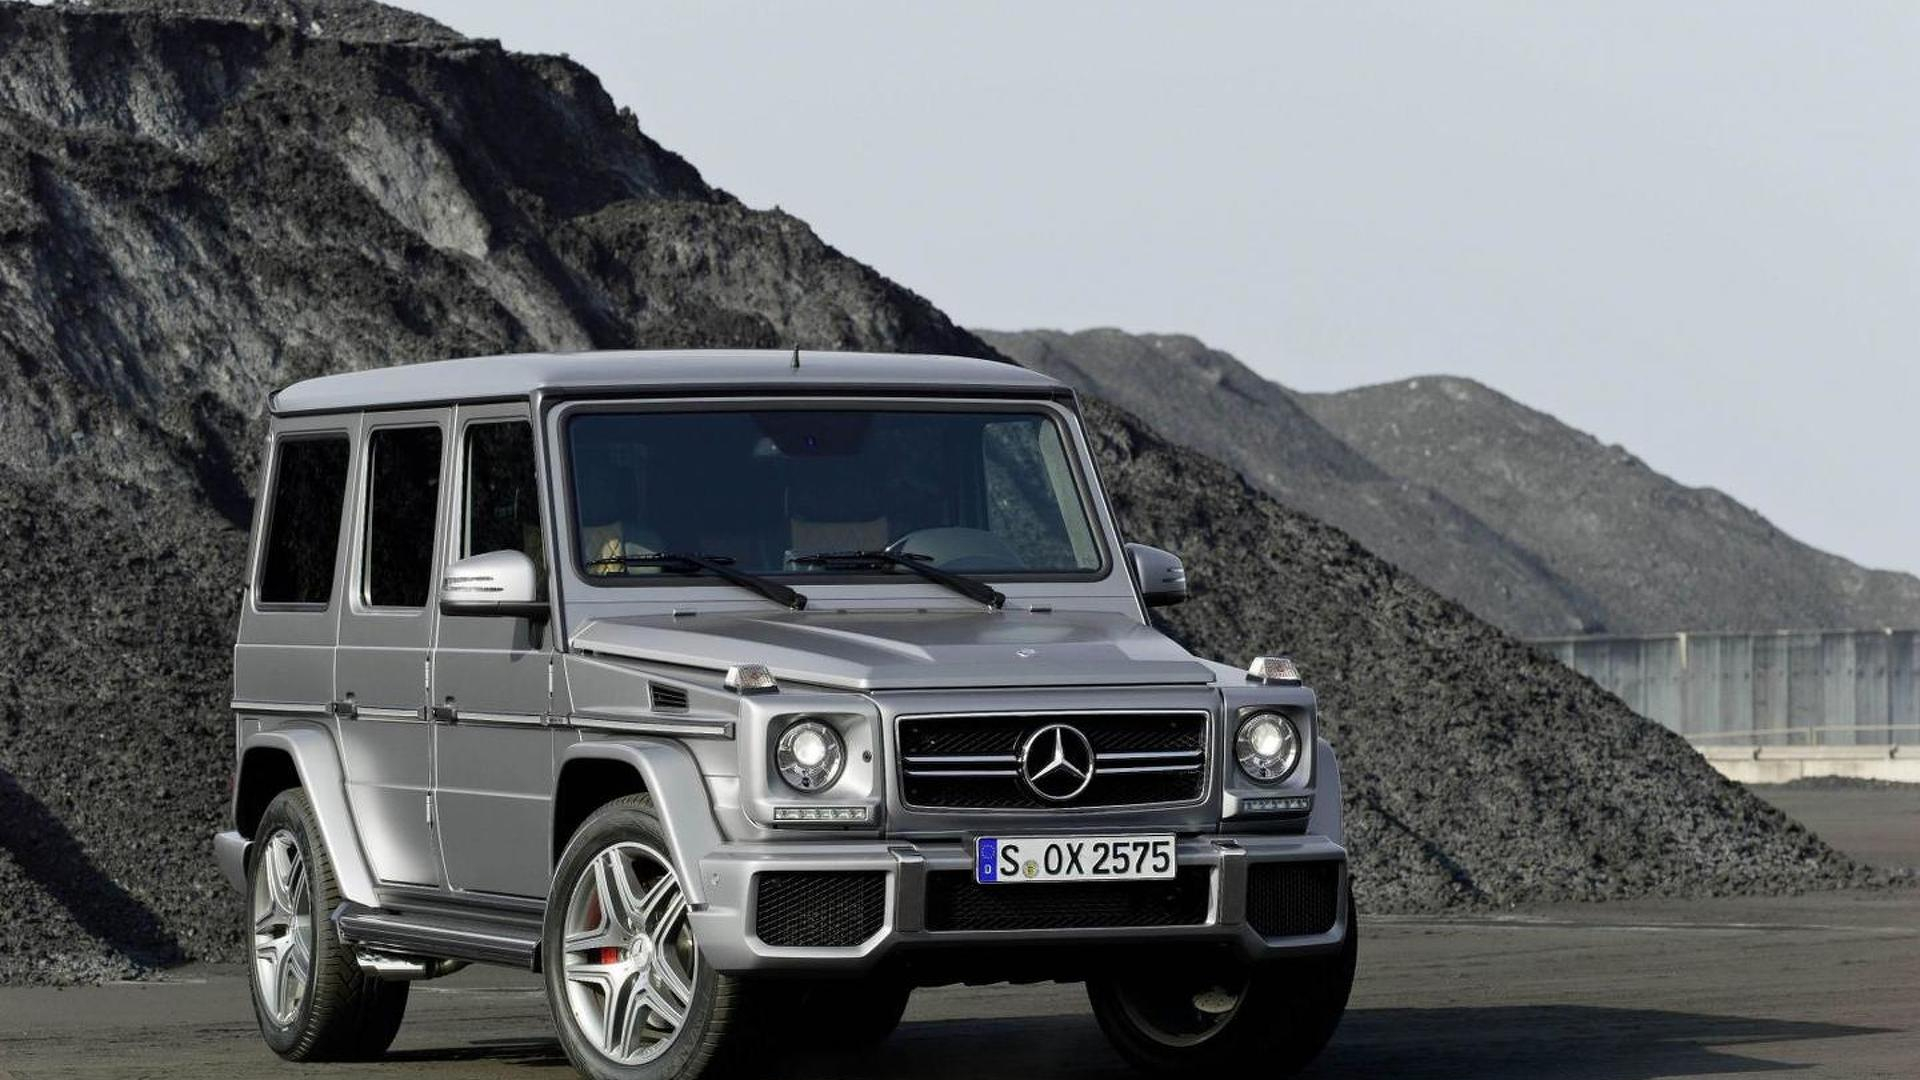 Mercedes-Benz G-Class priced in UK from 82,495 pounds